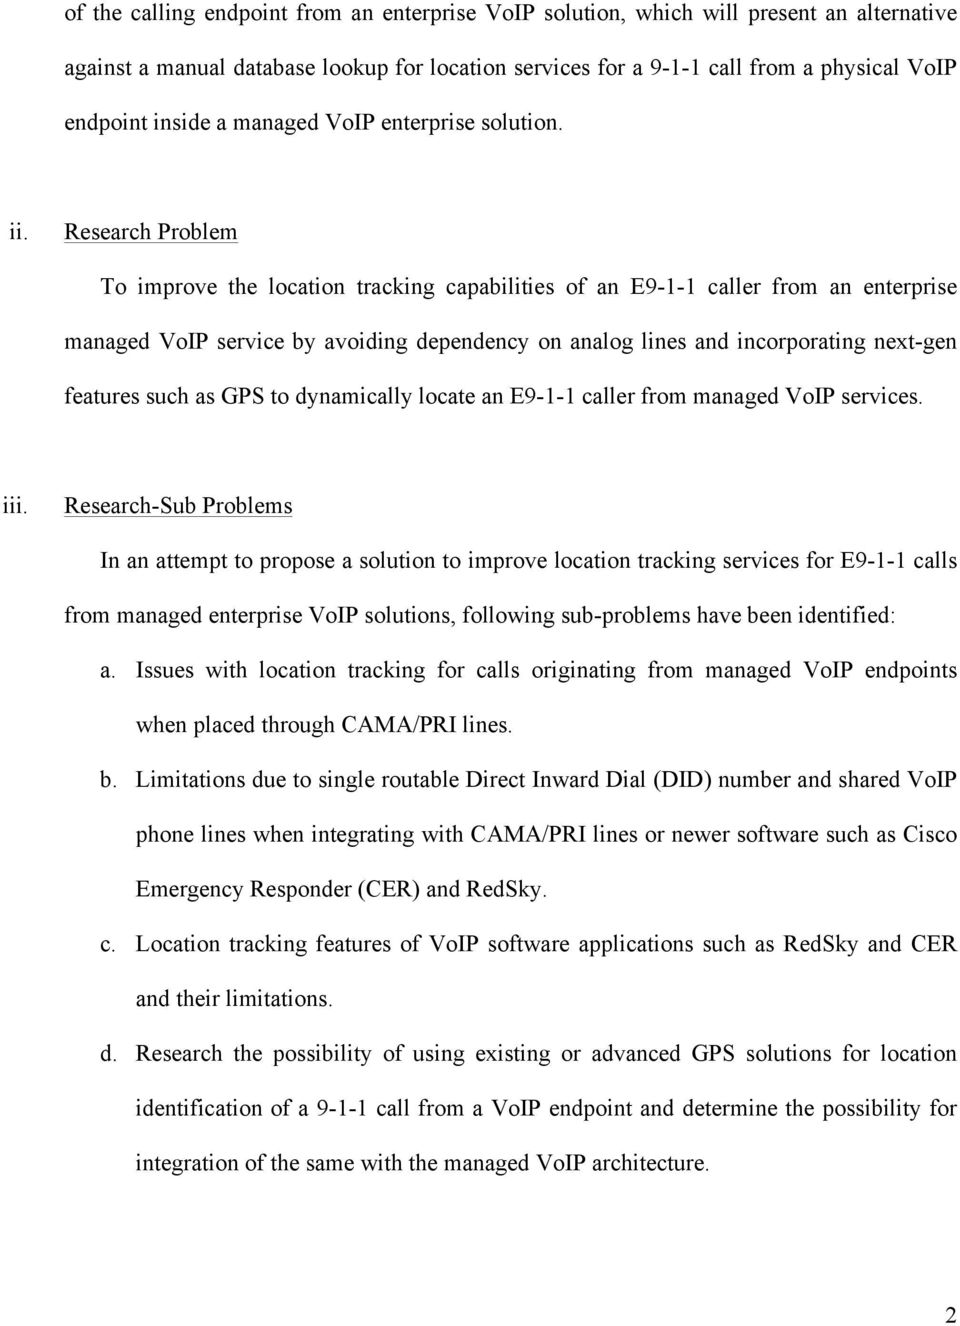 Research Problem To improve the location tracking capabilities of an E9-1-1 caller from an enterprise managed VoIP service by avoiding dependency on analog lines and incorporating next-gen features